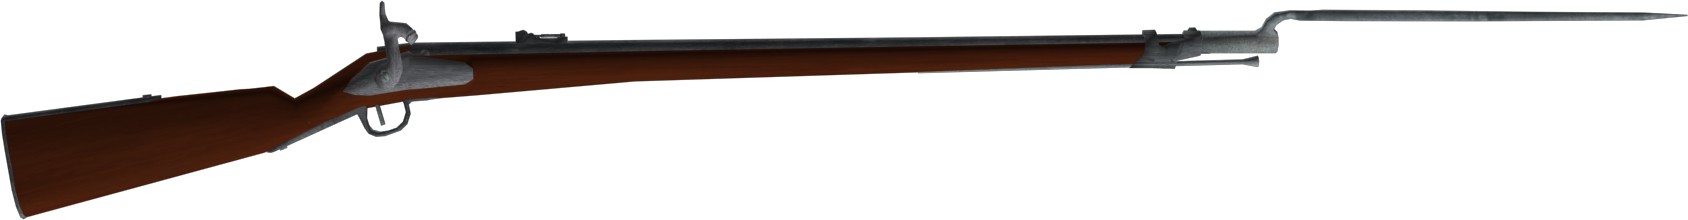 Musket_p1851.png